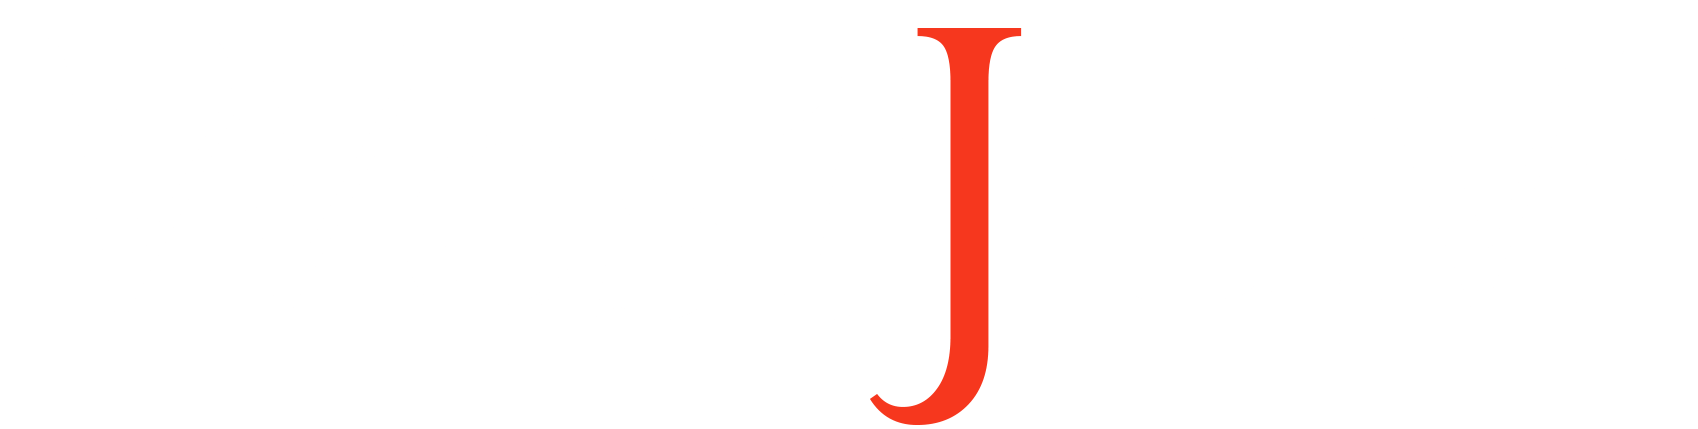 About - The Western Journal of Emergency Medicine